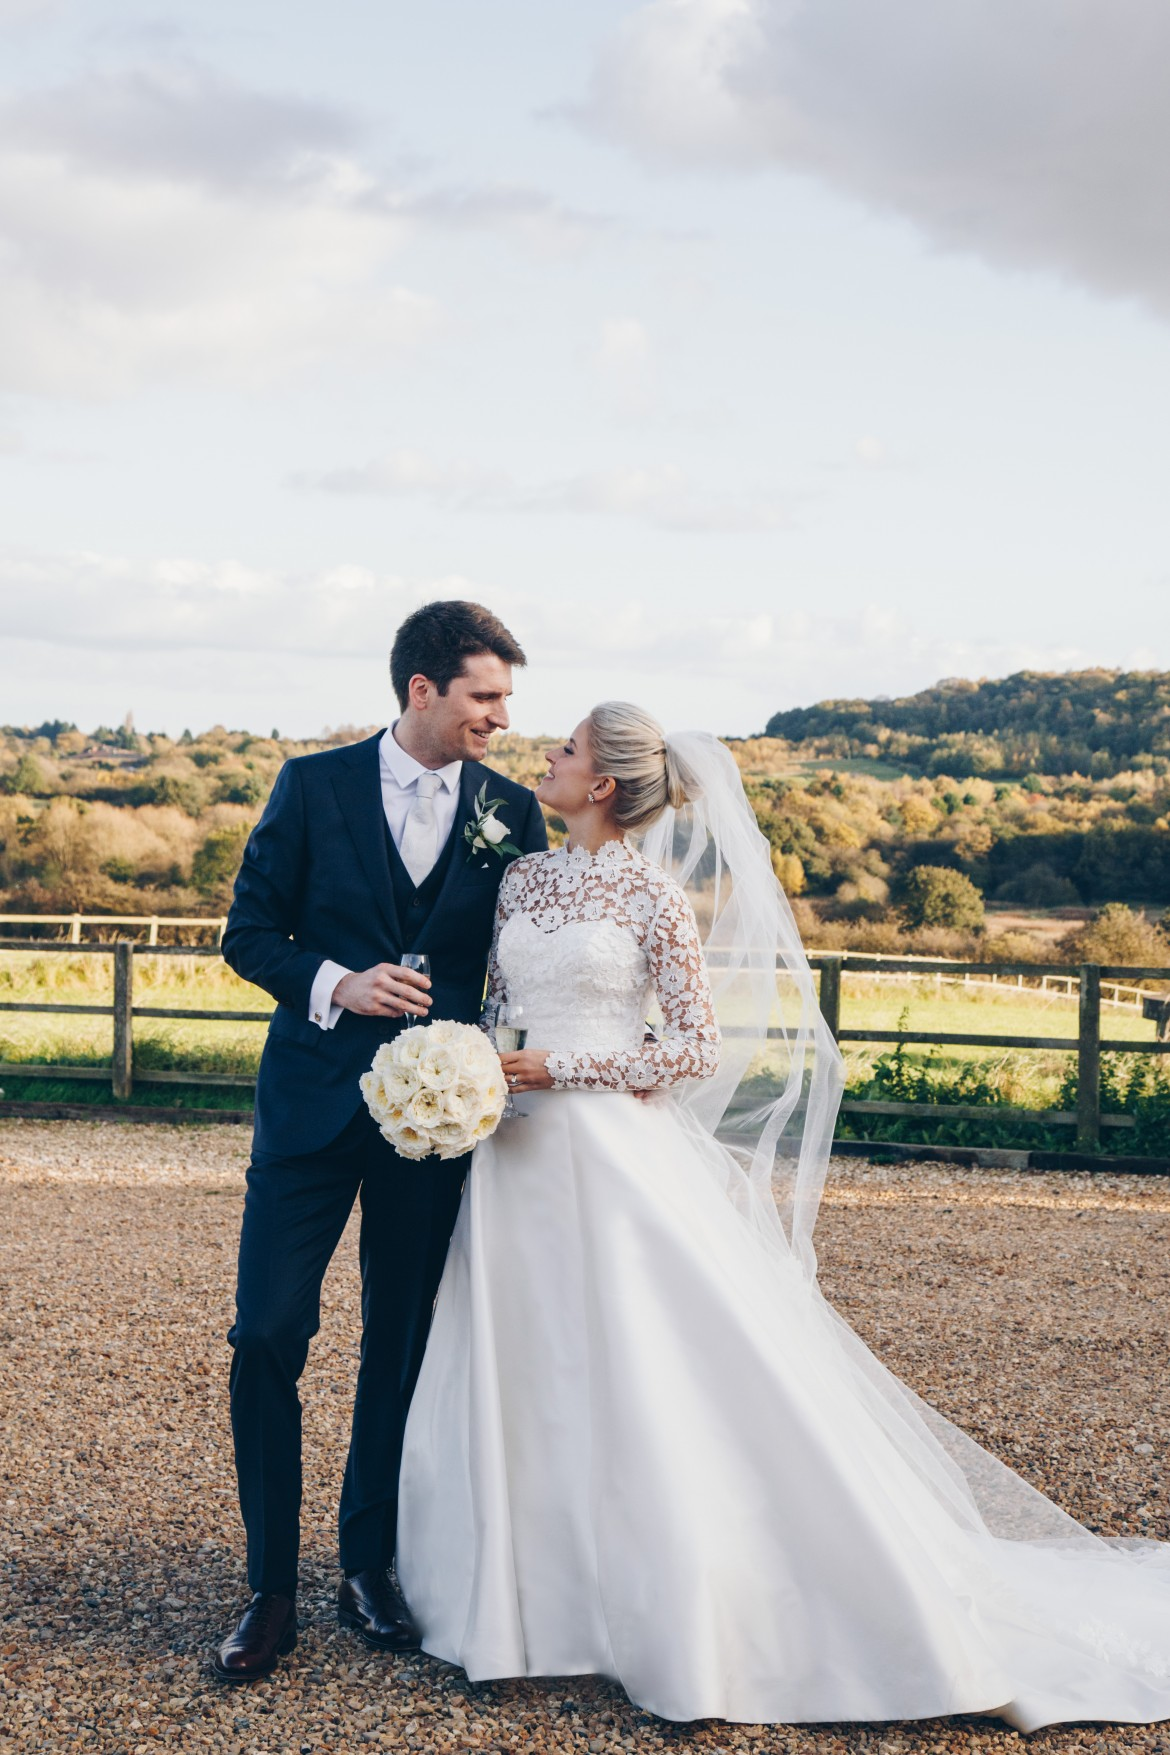 Statuesque designer wedding dress by Caroline Castigliano